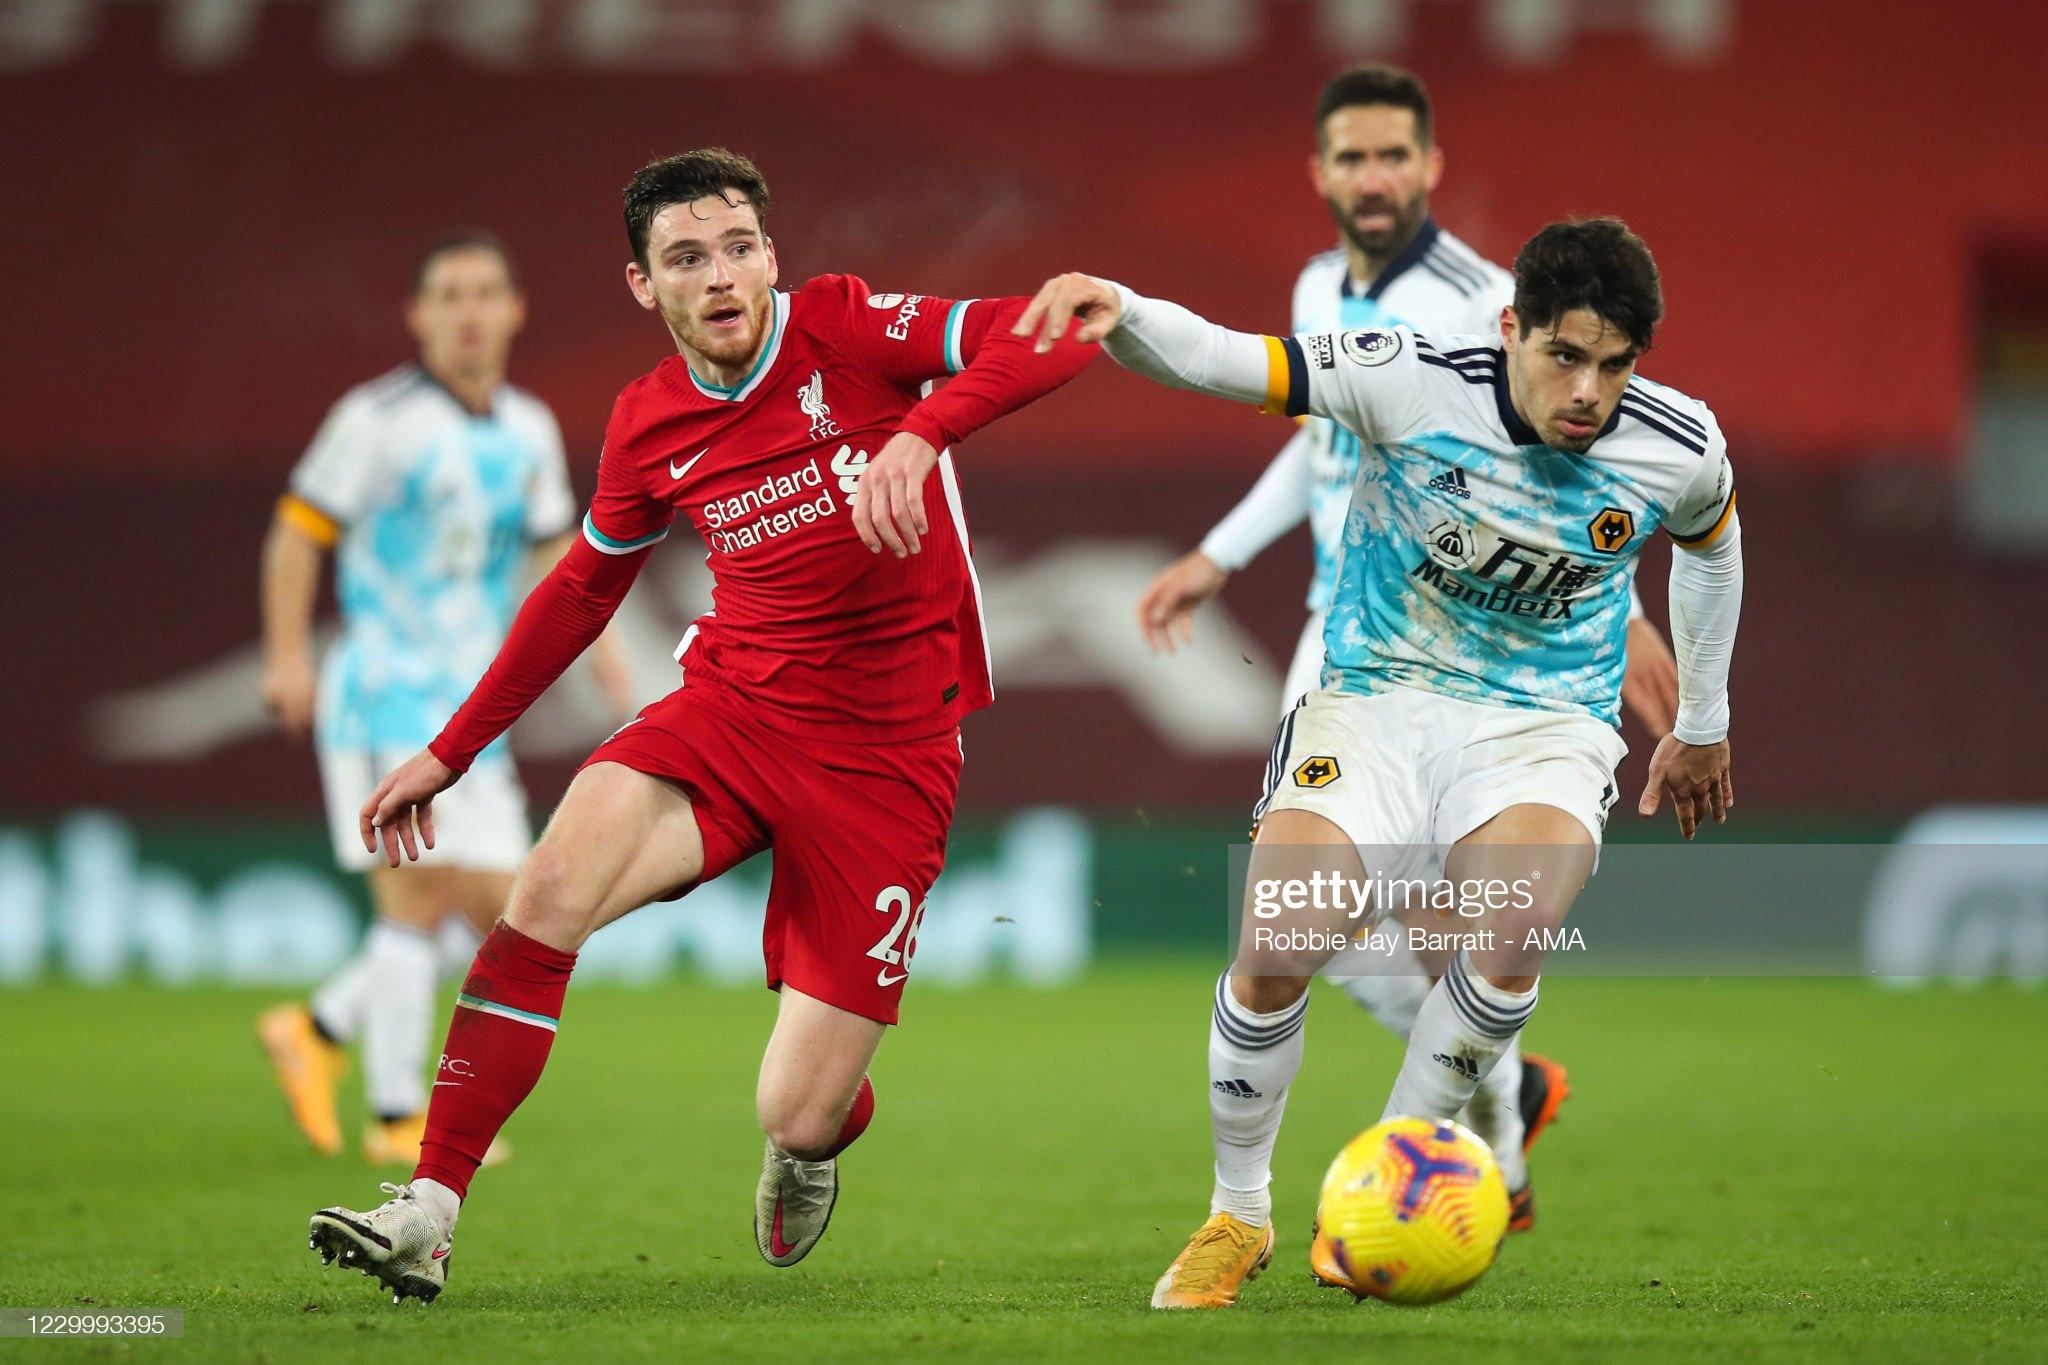 Wolves vs Liverpool preview, prediction and odds